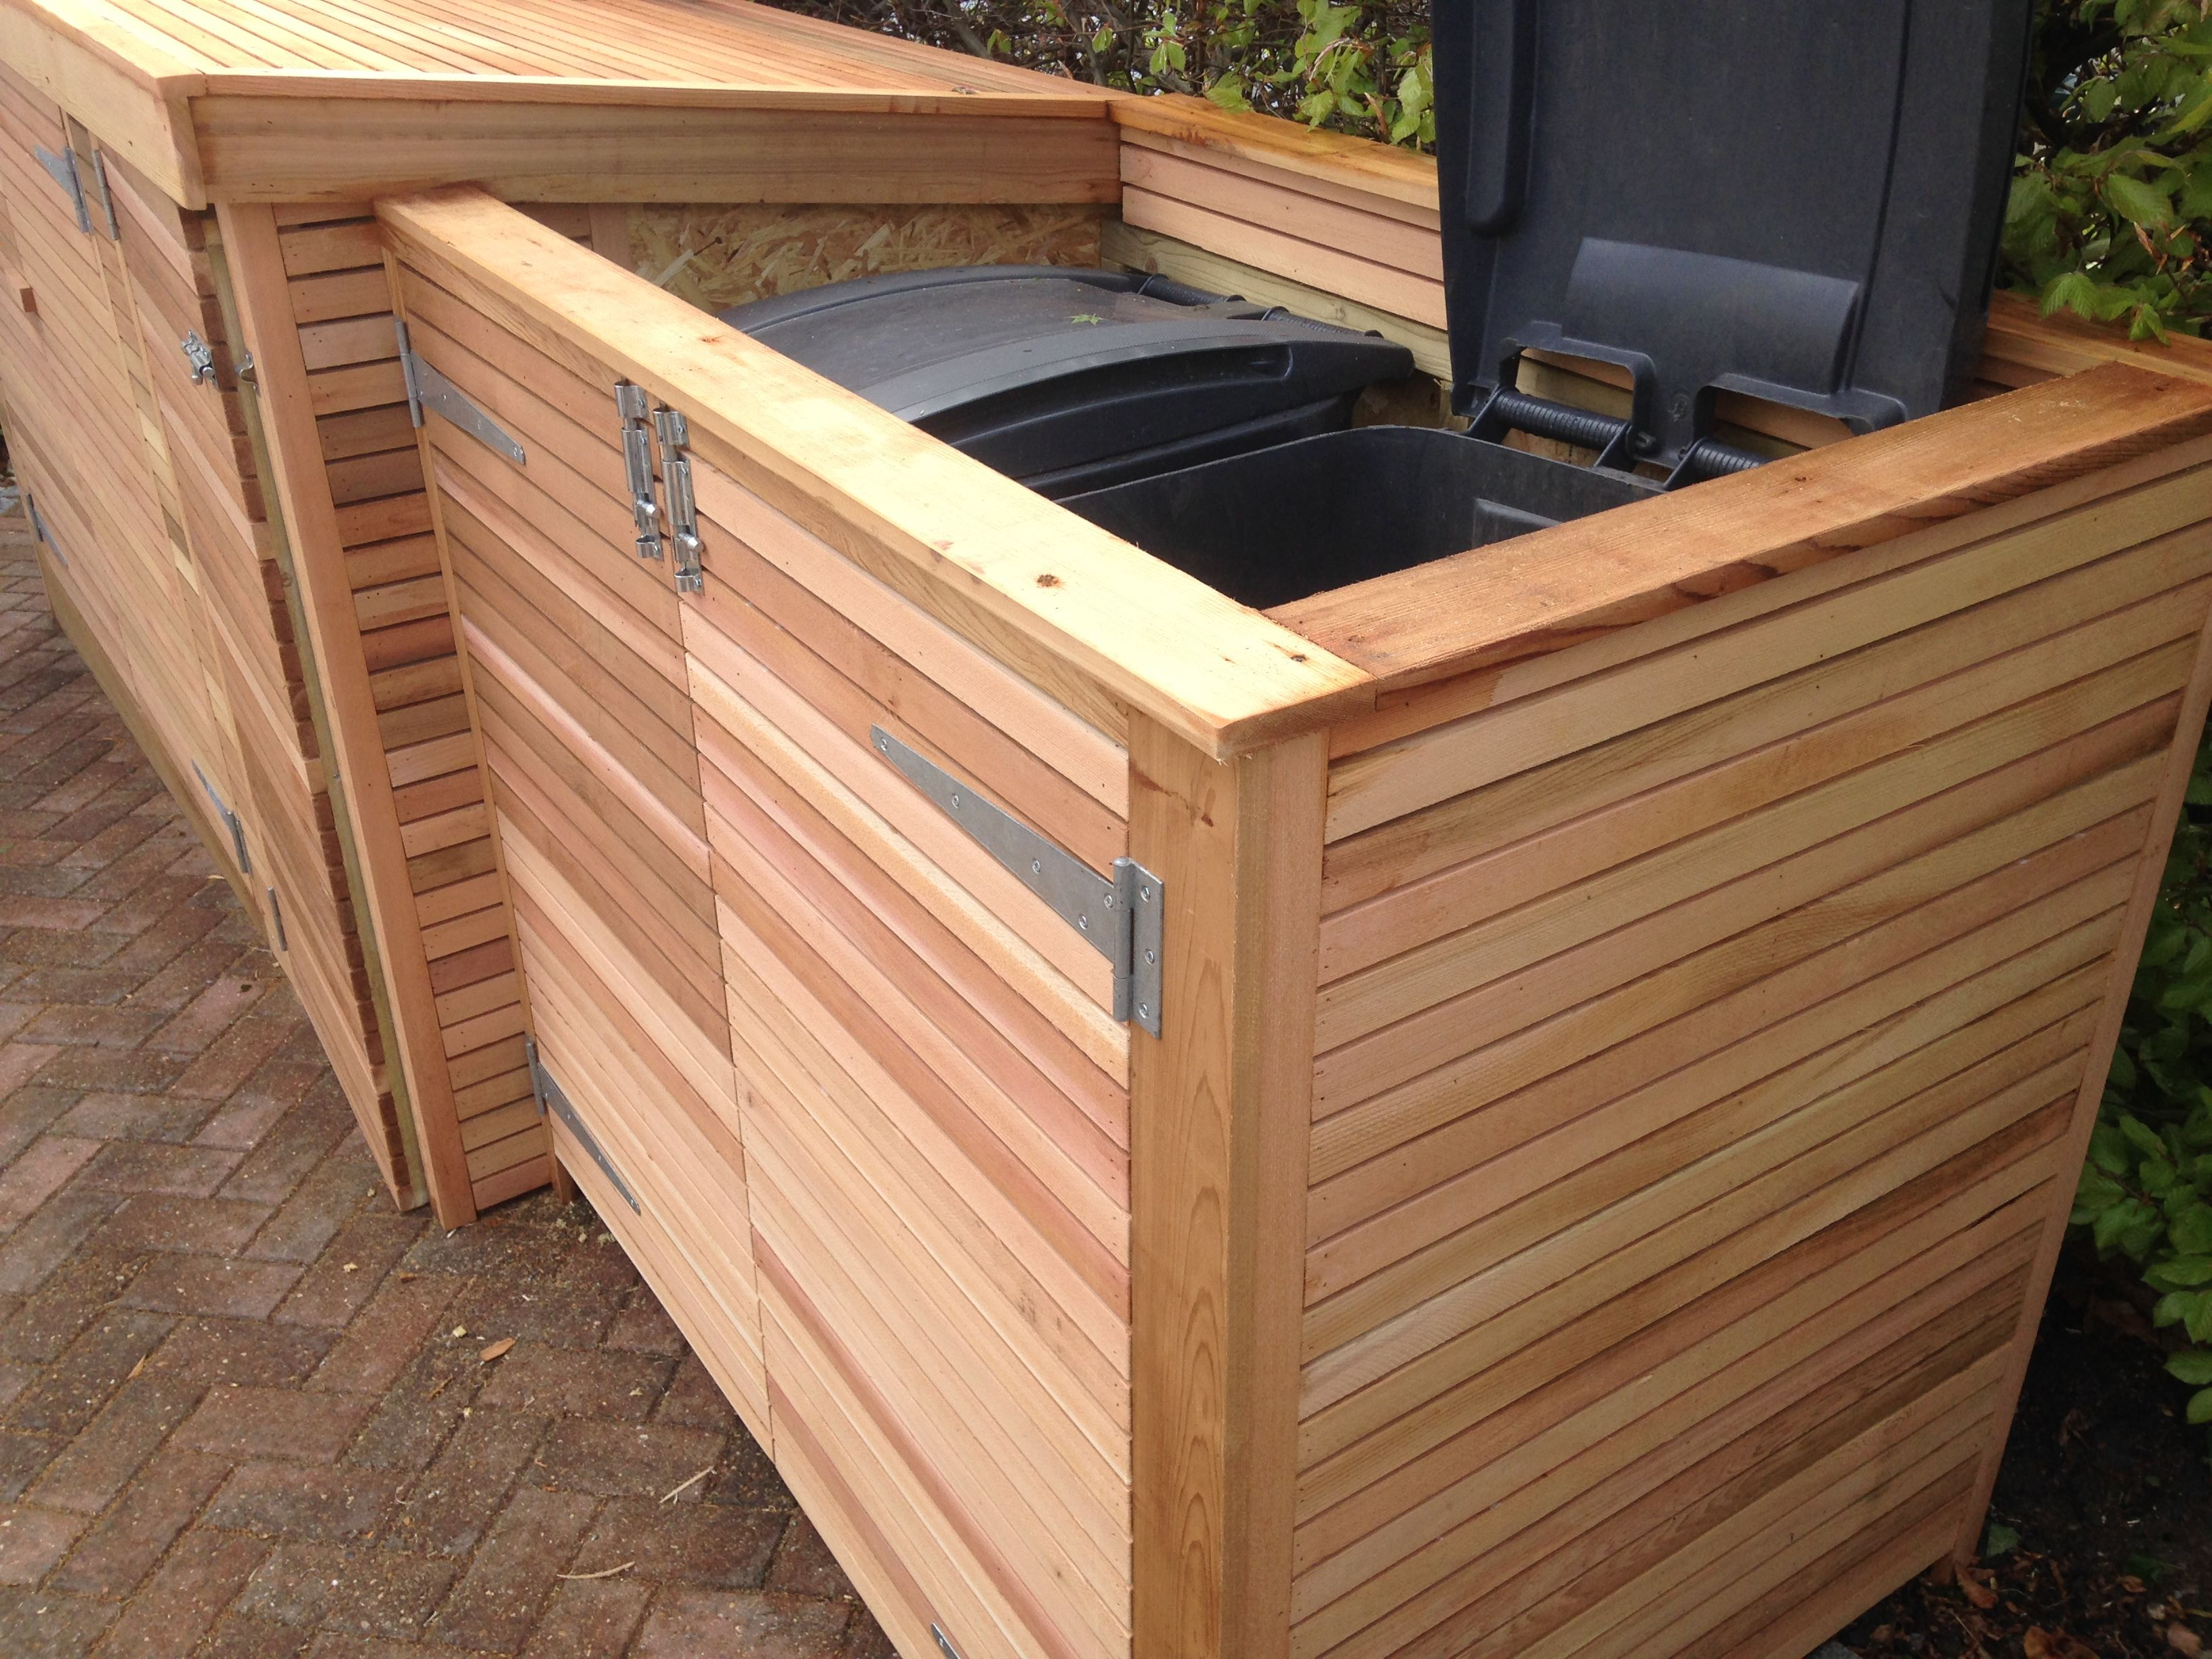 Winsome  Best Ideas About Bin Shed On Pinterest  Garbage Storage  With Entrancing Bike Shed With Bin Store Attached Clad In Horizontal Cedar Slats With Extraordinary Green Island Garden Also In An Octopuss Garden In Addition Garden Brush Argos And Plastic Garden Troughs As Well As Welwyn Garden City Jobs Additionally Gardener Prices From Pinterestcom With   Entrancing  Best Ideas About Bin Shed On Pinterest  Garbage Storage  With Extraordinary Bike Shed With Bin Store Attached Clad In Horizontal Cedar Slats And Winsome Green Island Garden Also In An Octopuss Garden In Addition Garden Brush Argos From Pinterestcom